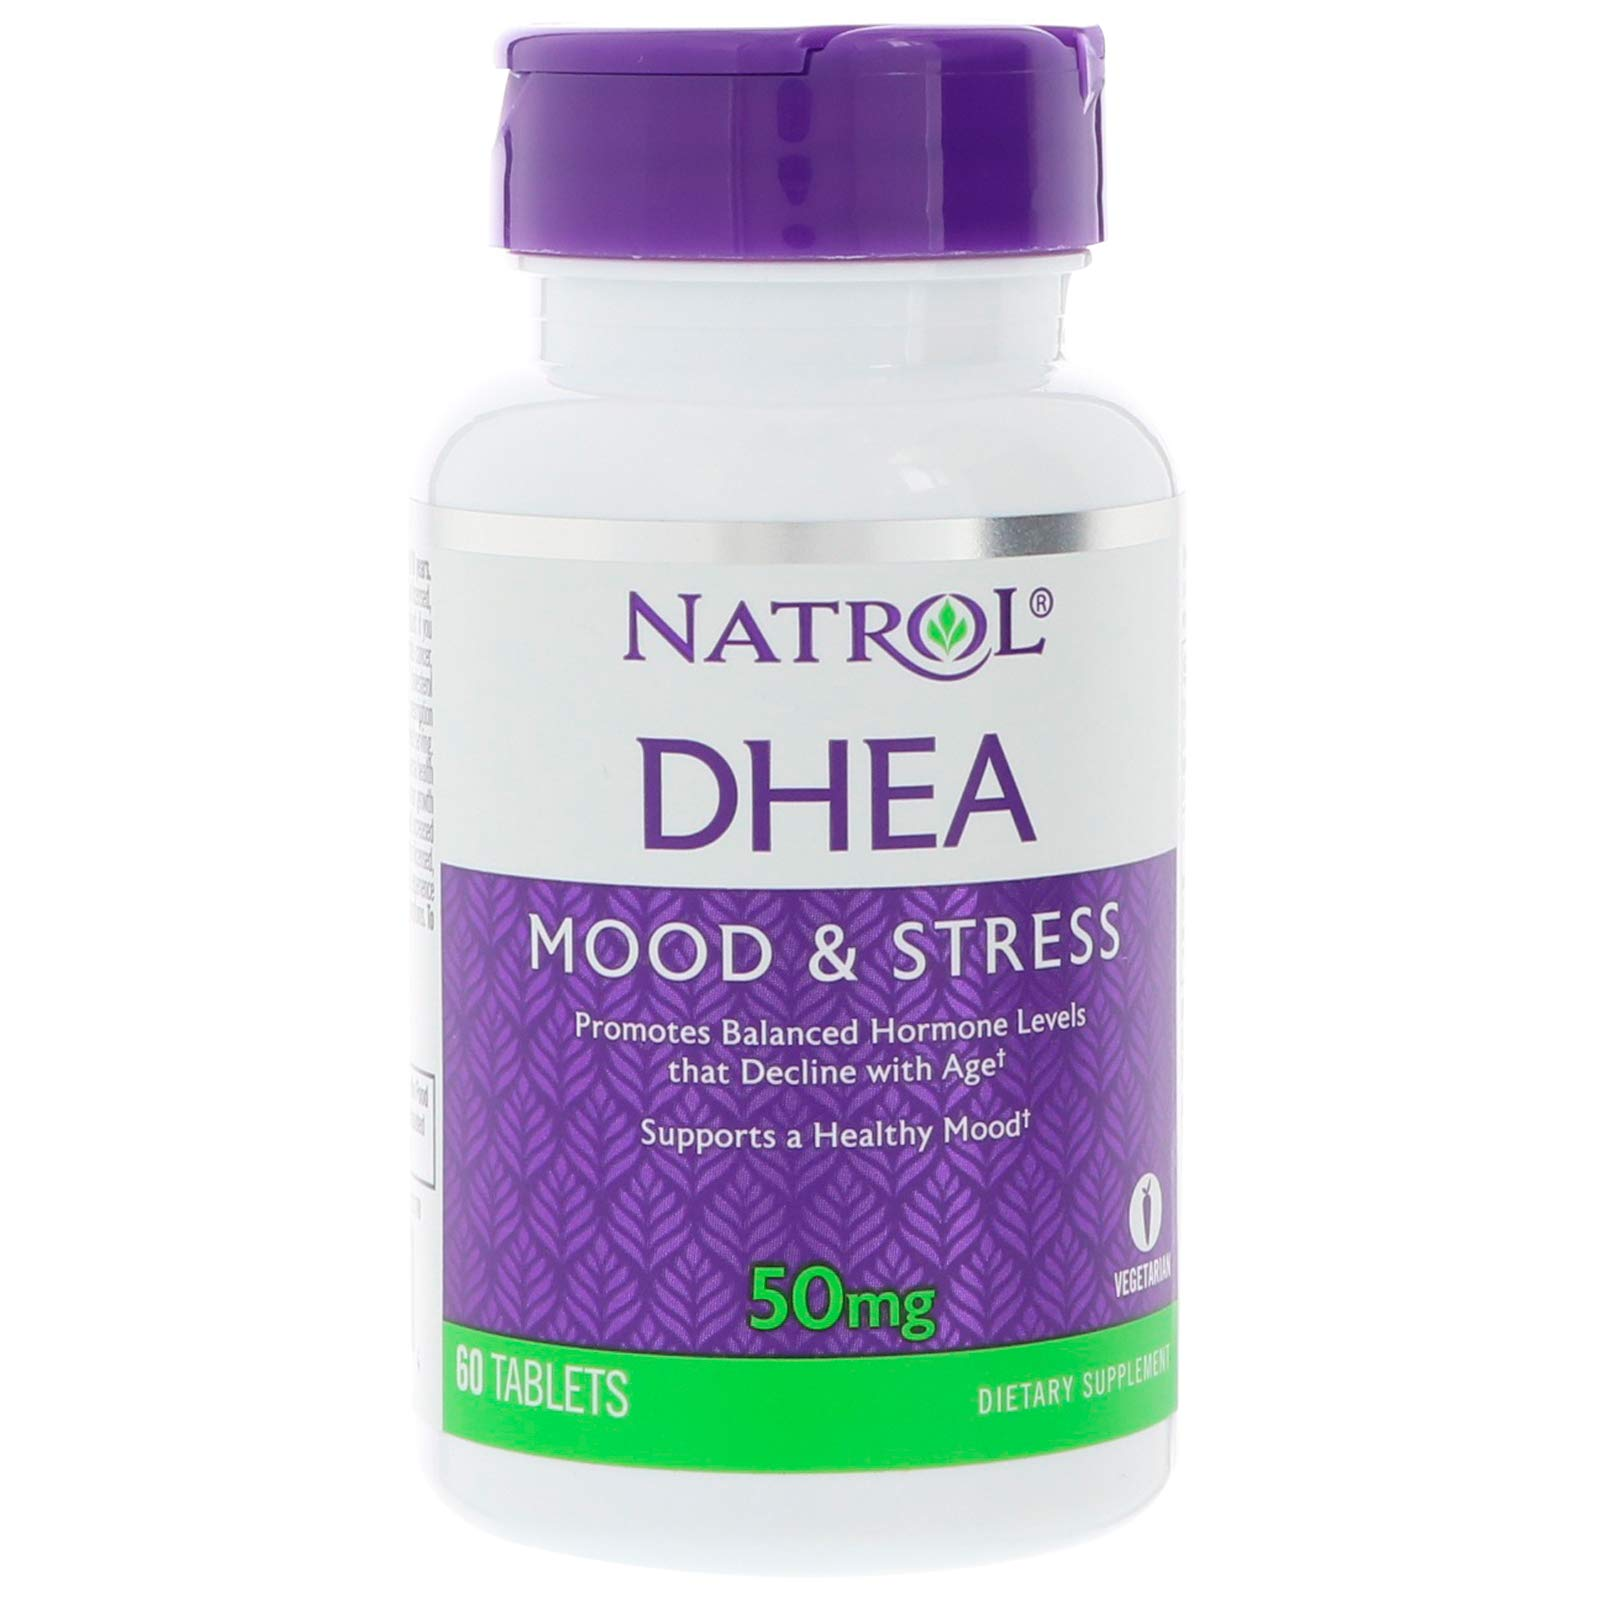 Natrol DHEA 50mg, 60 Tablets (Pack of 6)